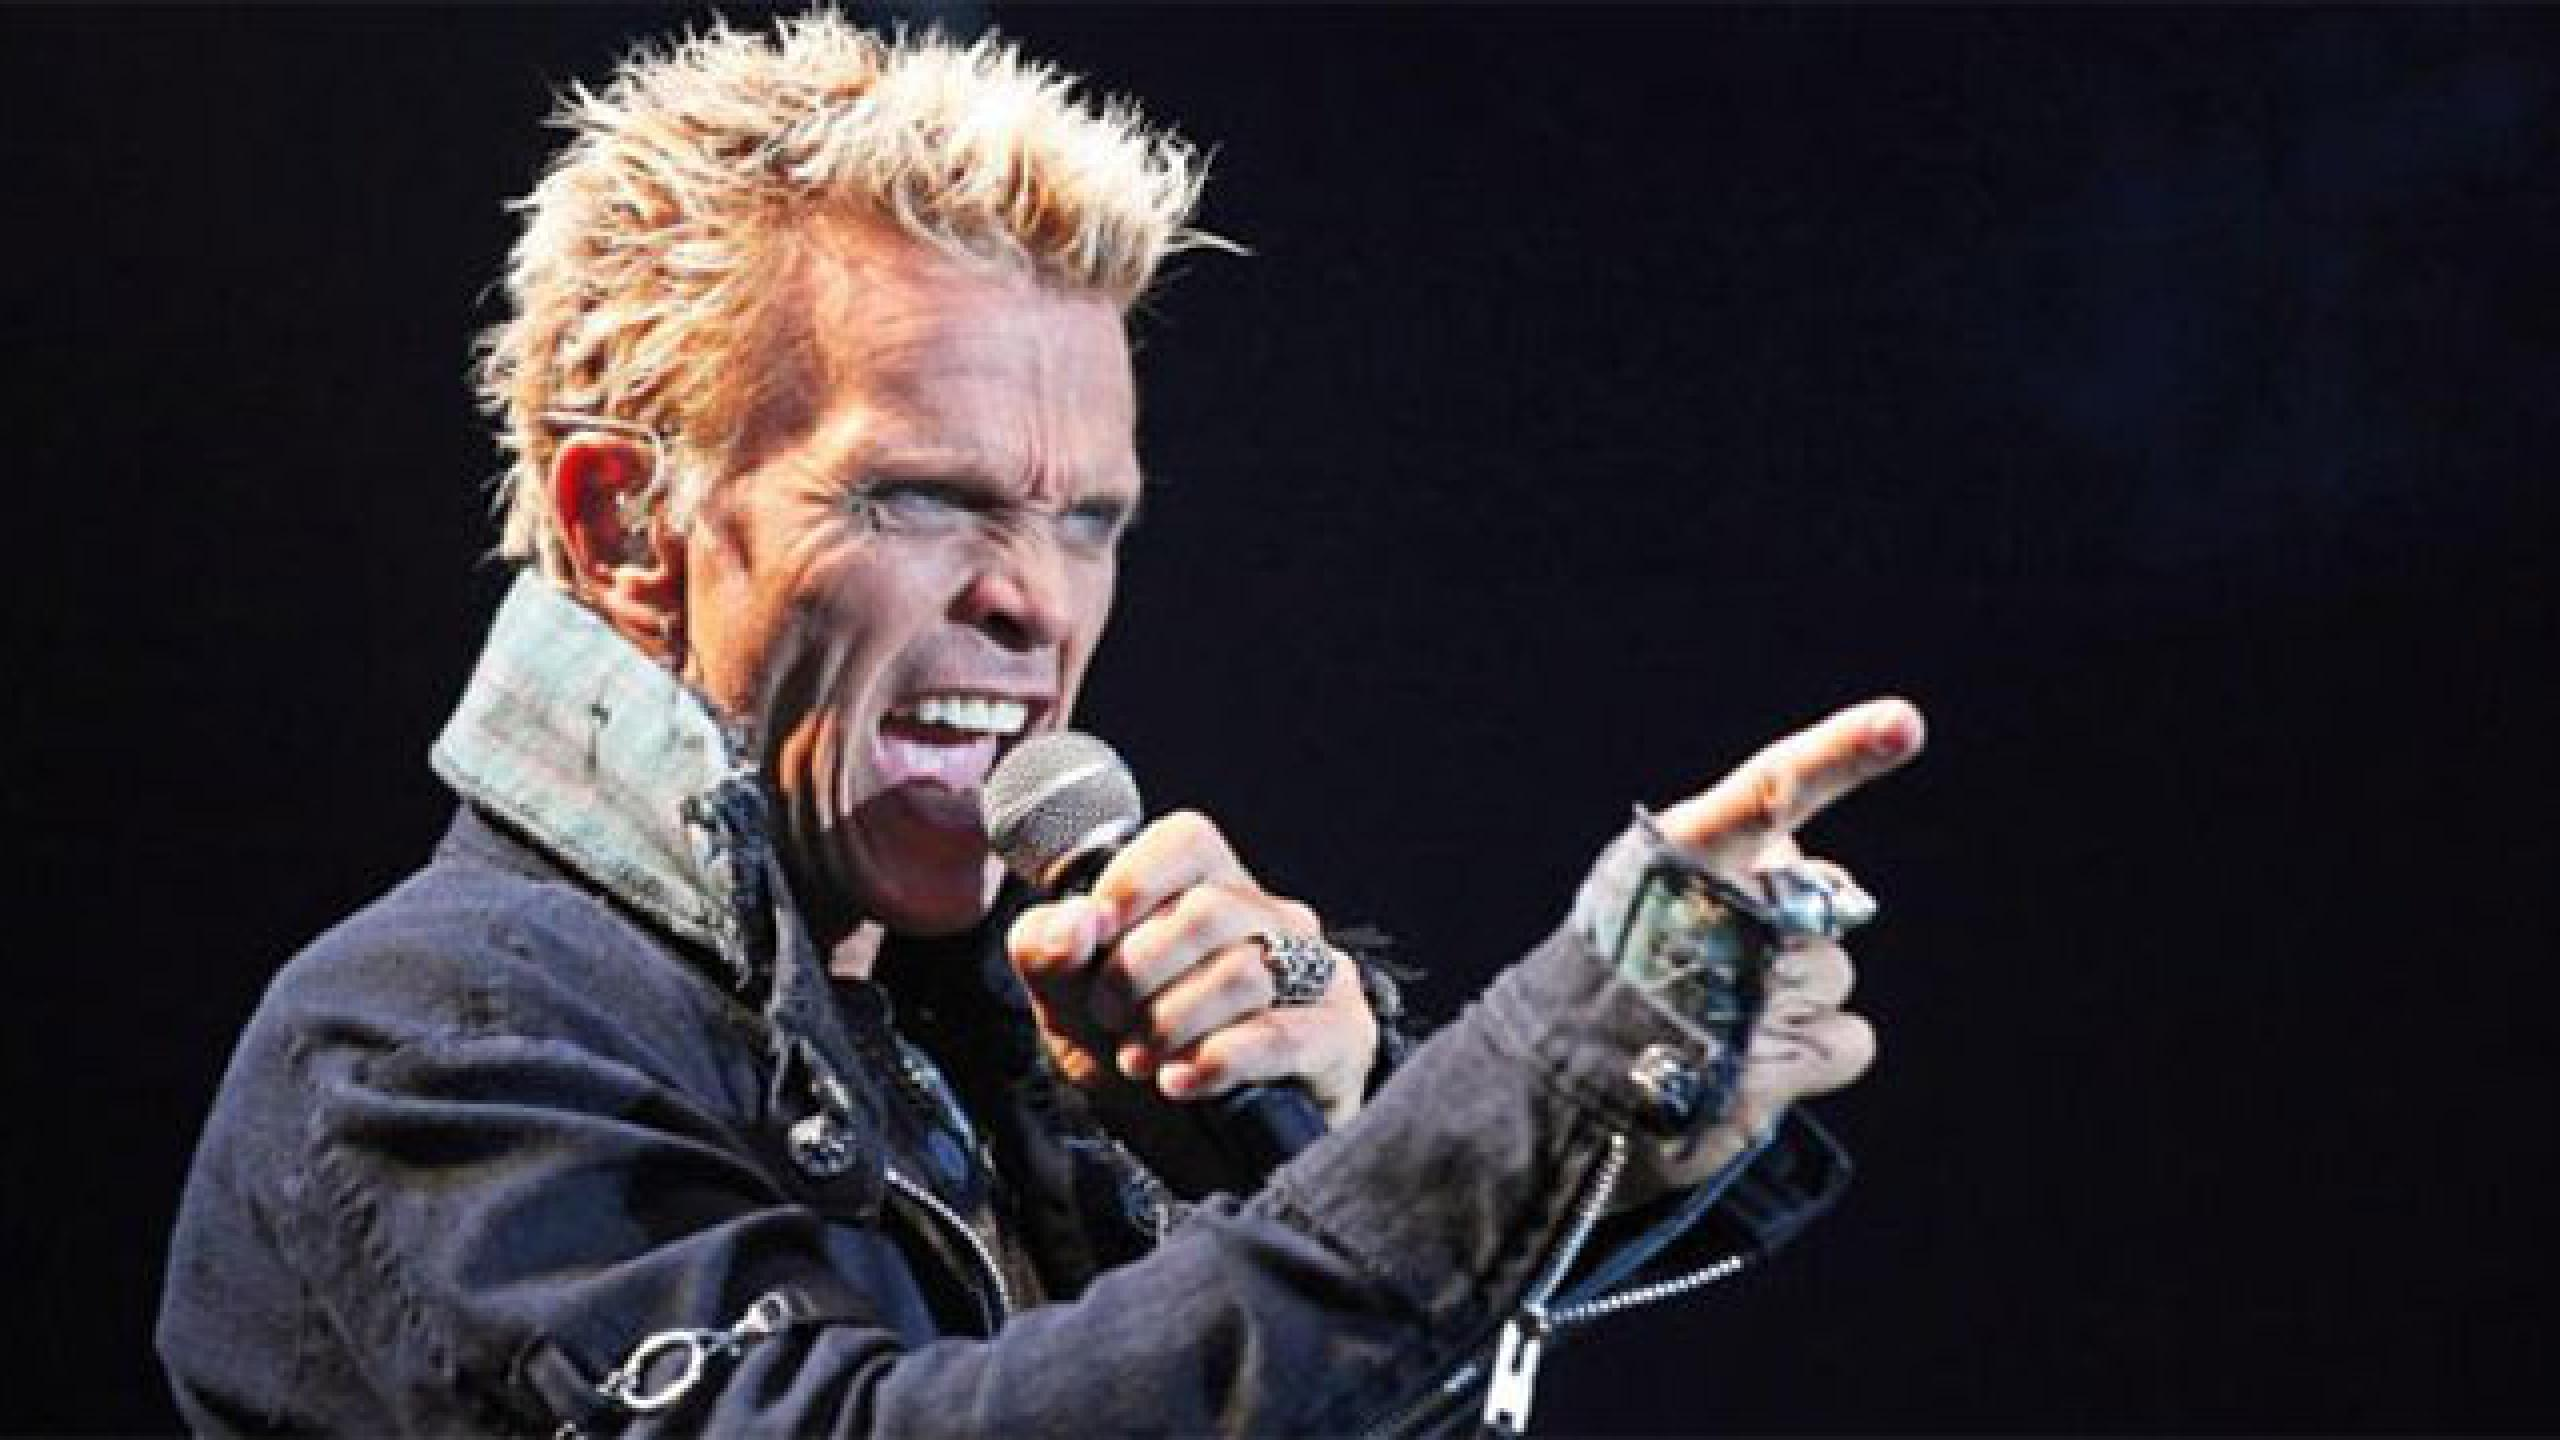 Billy Idol tour dates 2017 2018  Billy Idol tickets and concerts   Wegow